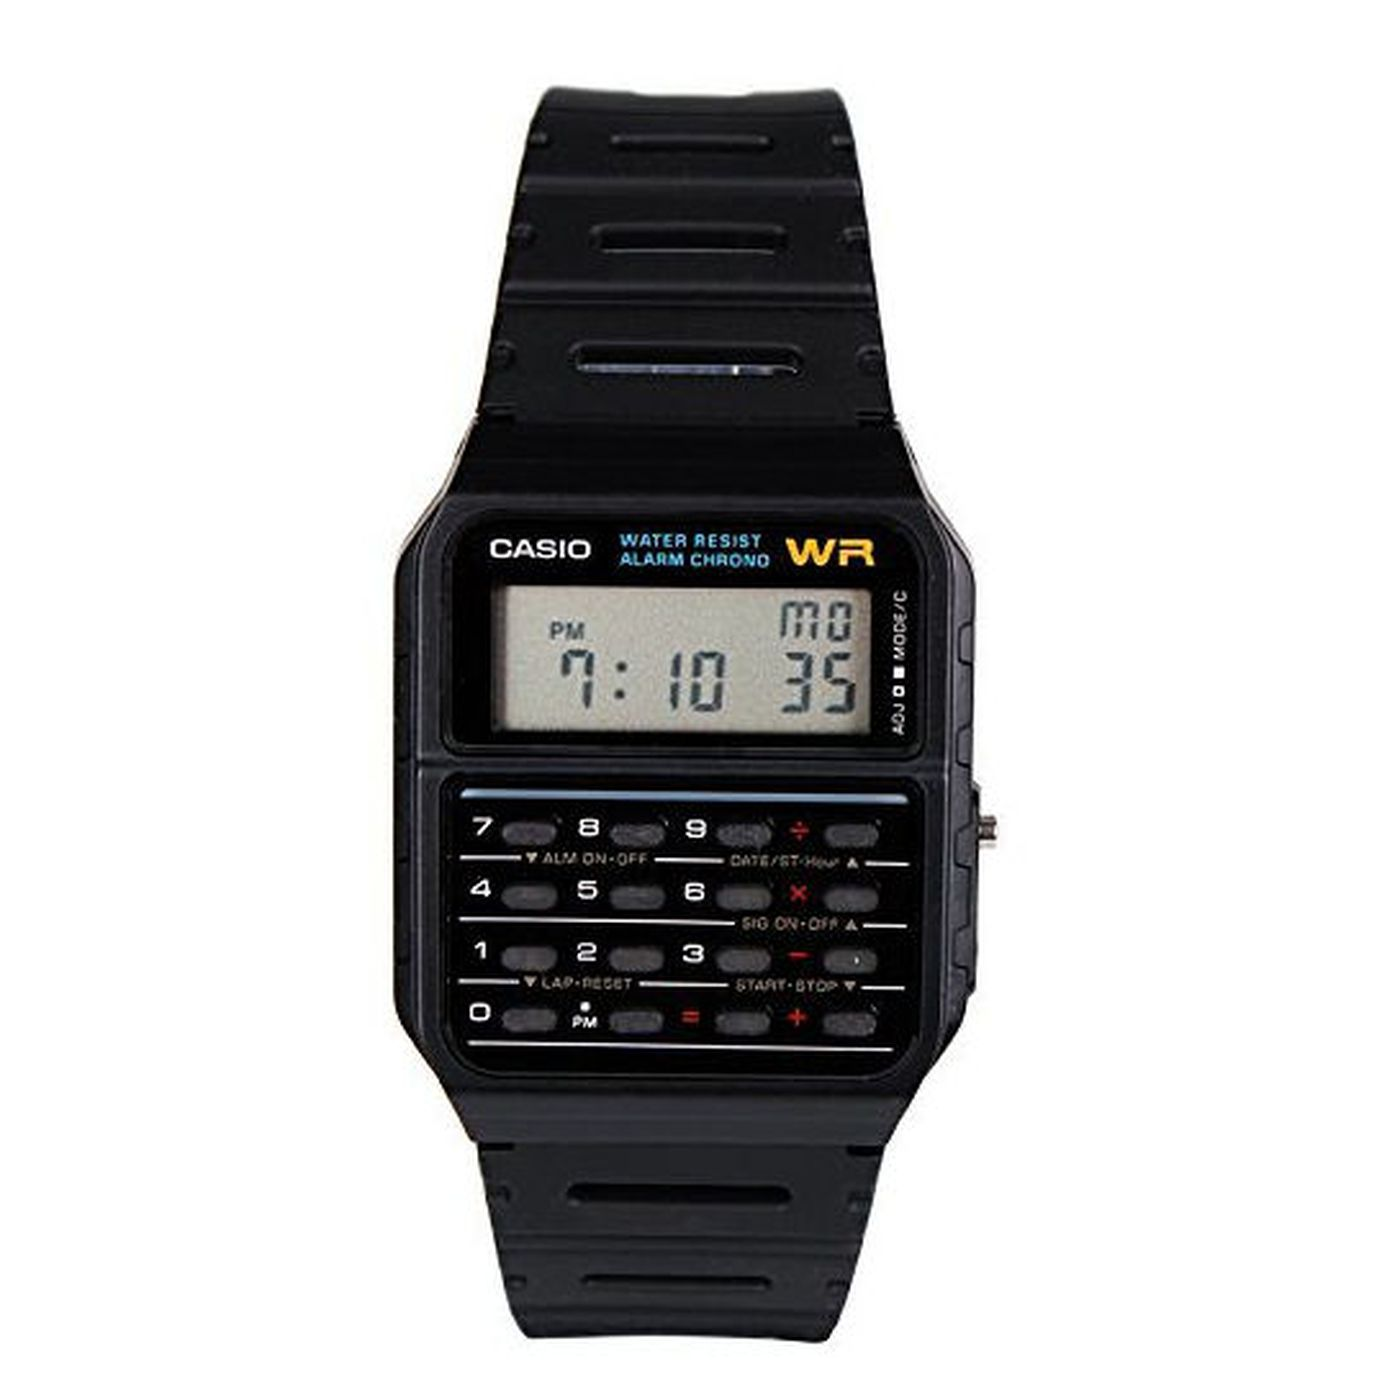 Functionality and Features of a Calculator Watch